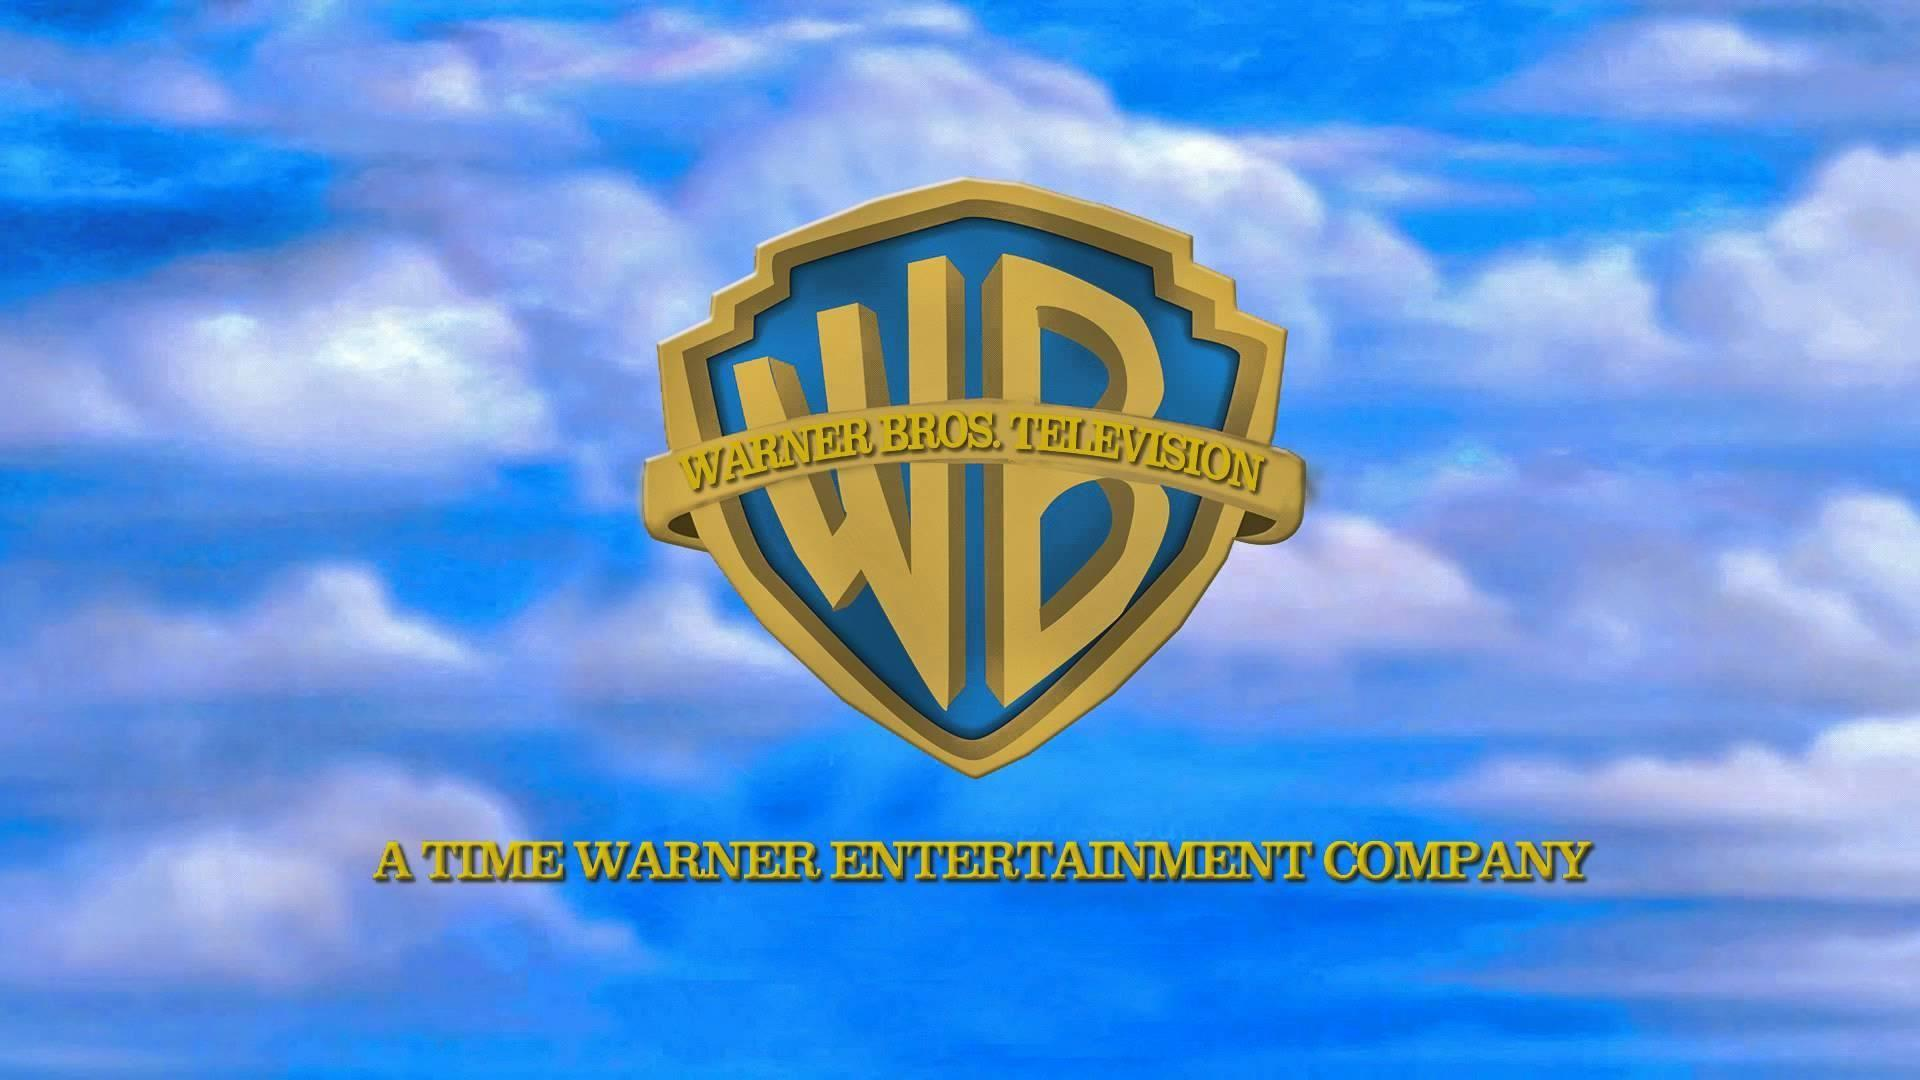 Best 54+ Warner Bros Wallpaper on HipWallpaper | Smash Bros ...